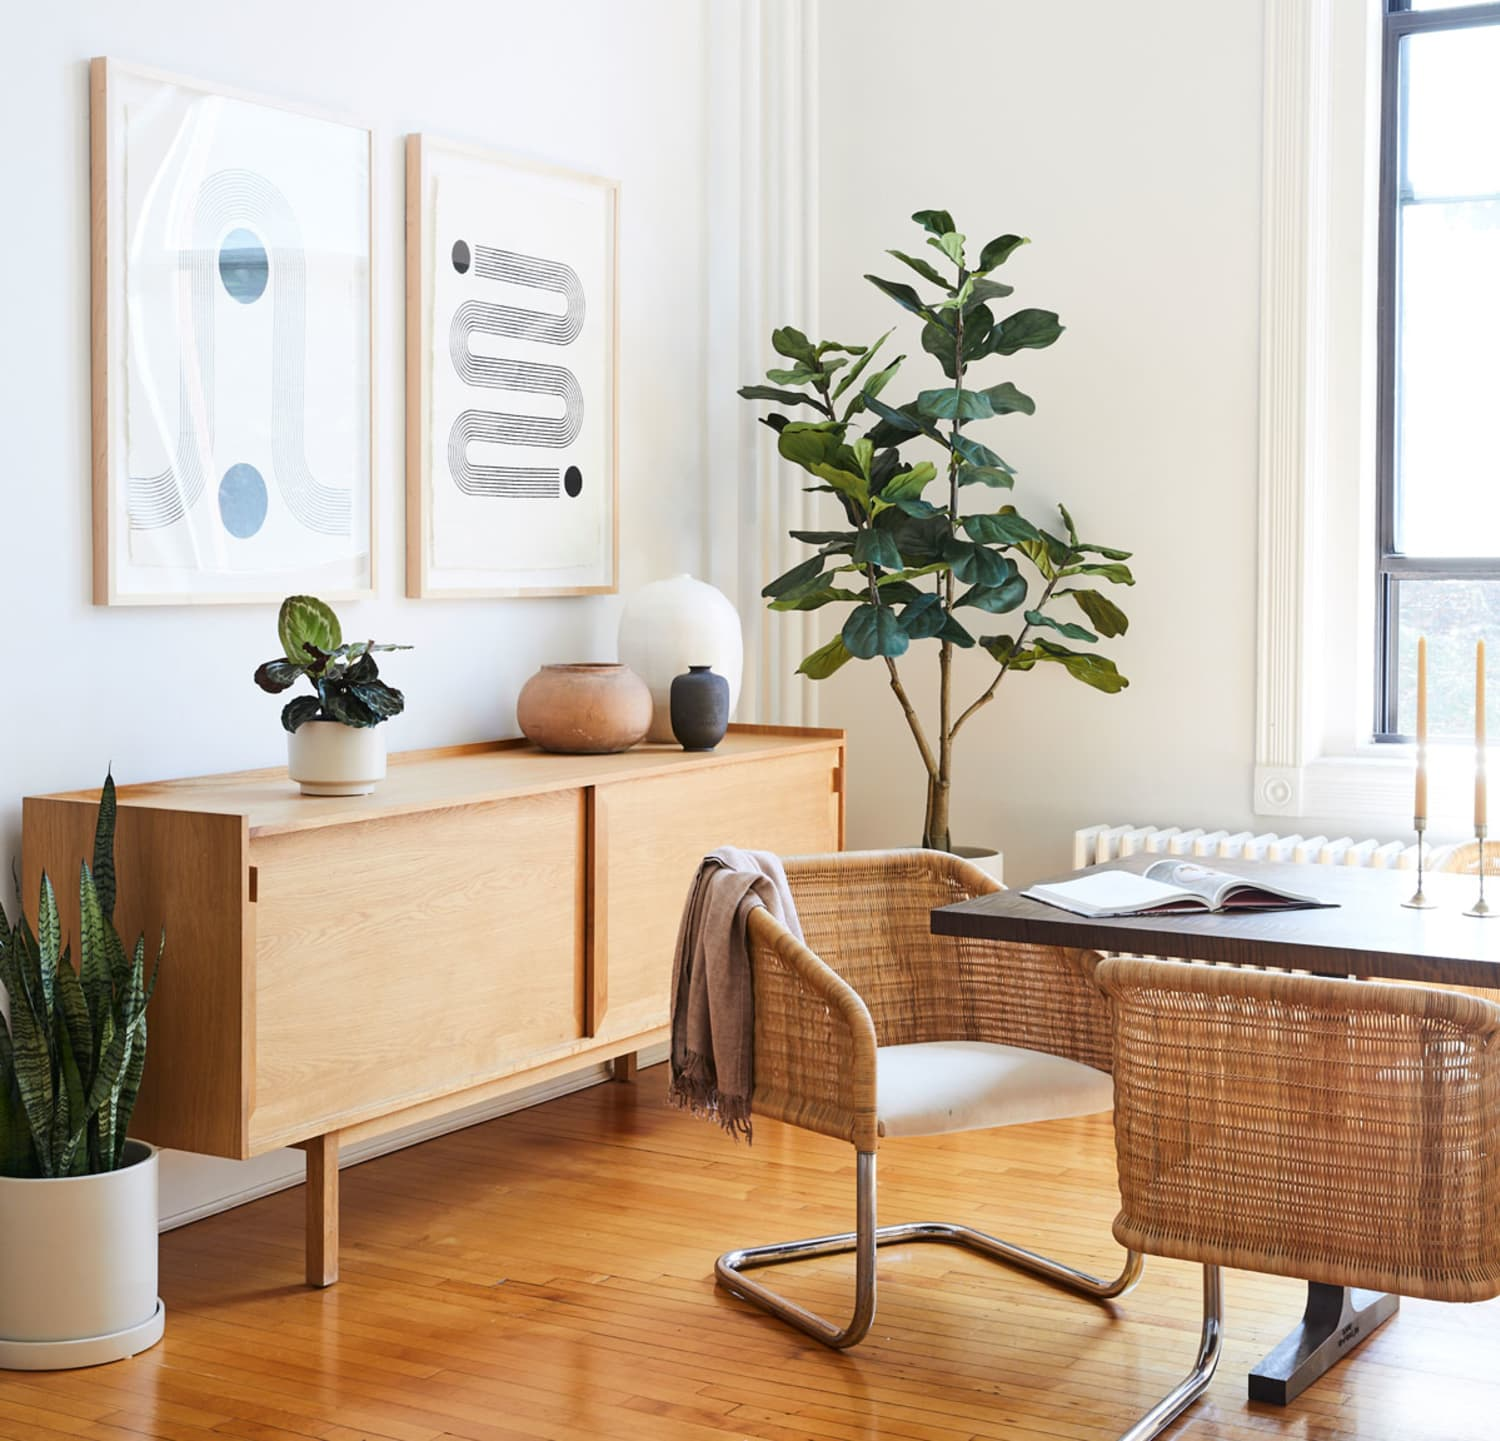 The Secret to Convincing Fake Plants Is Also Having Real Ones—Here's How to Make It Work